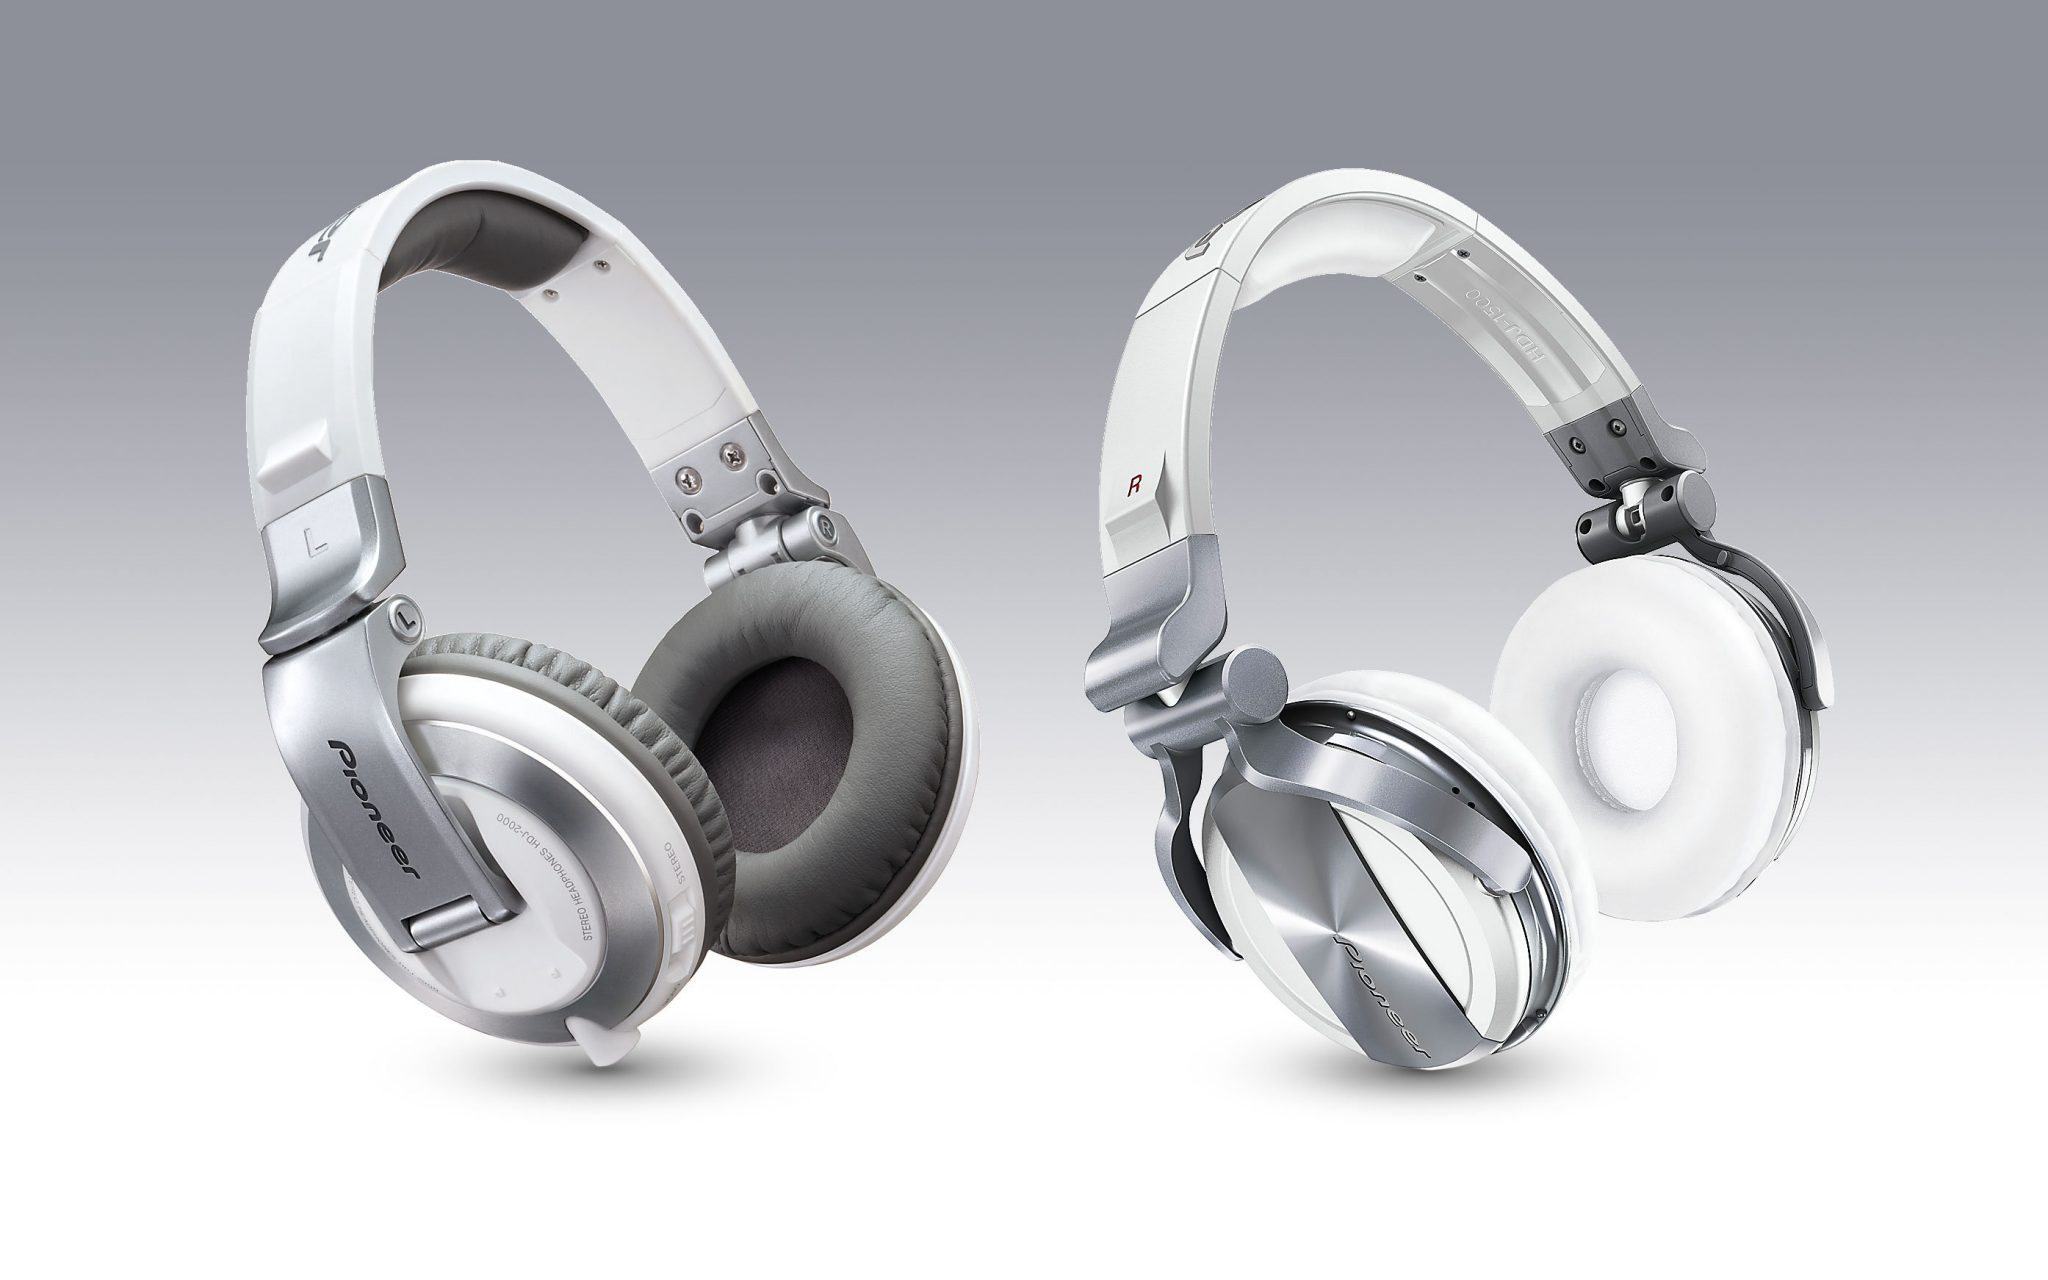 New shiny... err matte white Pioneer HDJ-2000 and 1500 headphones | DJWORX